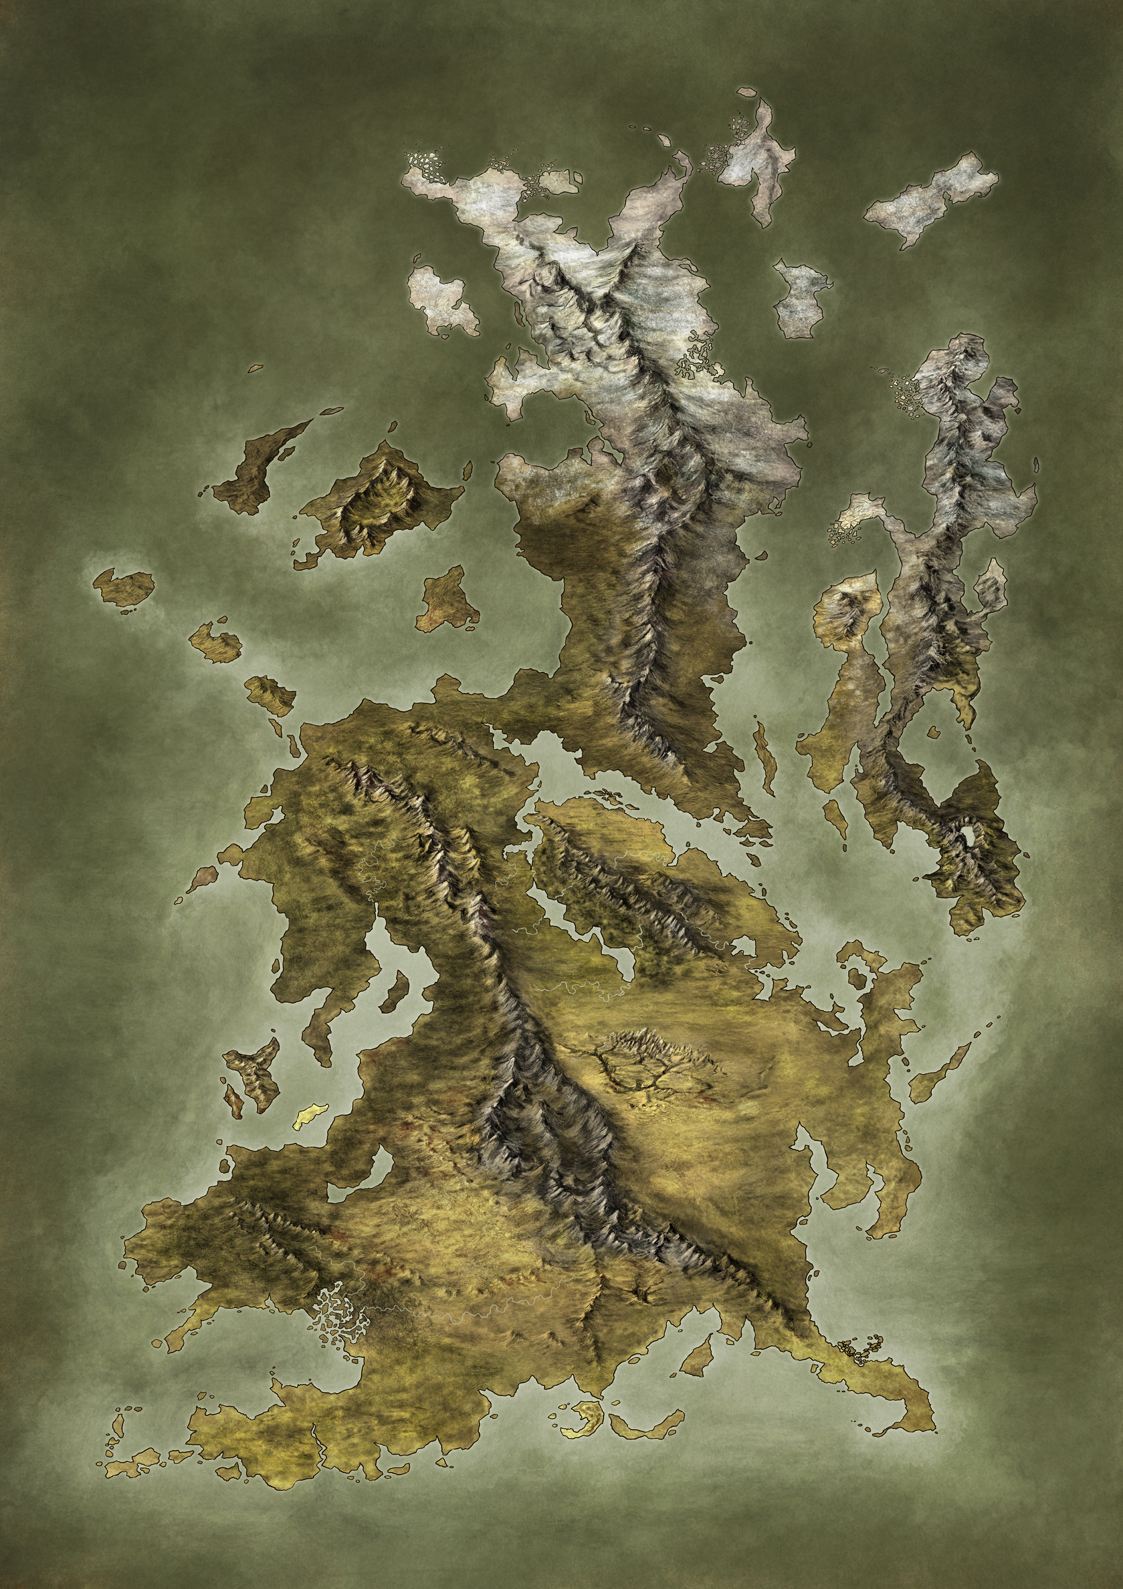 Handpainted Fantasy Map Concept by Djekspek